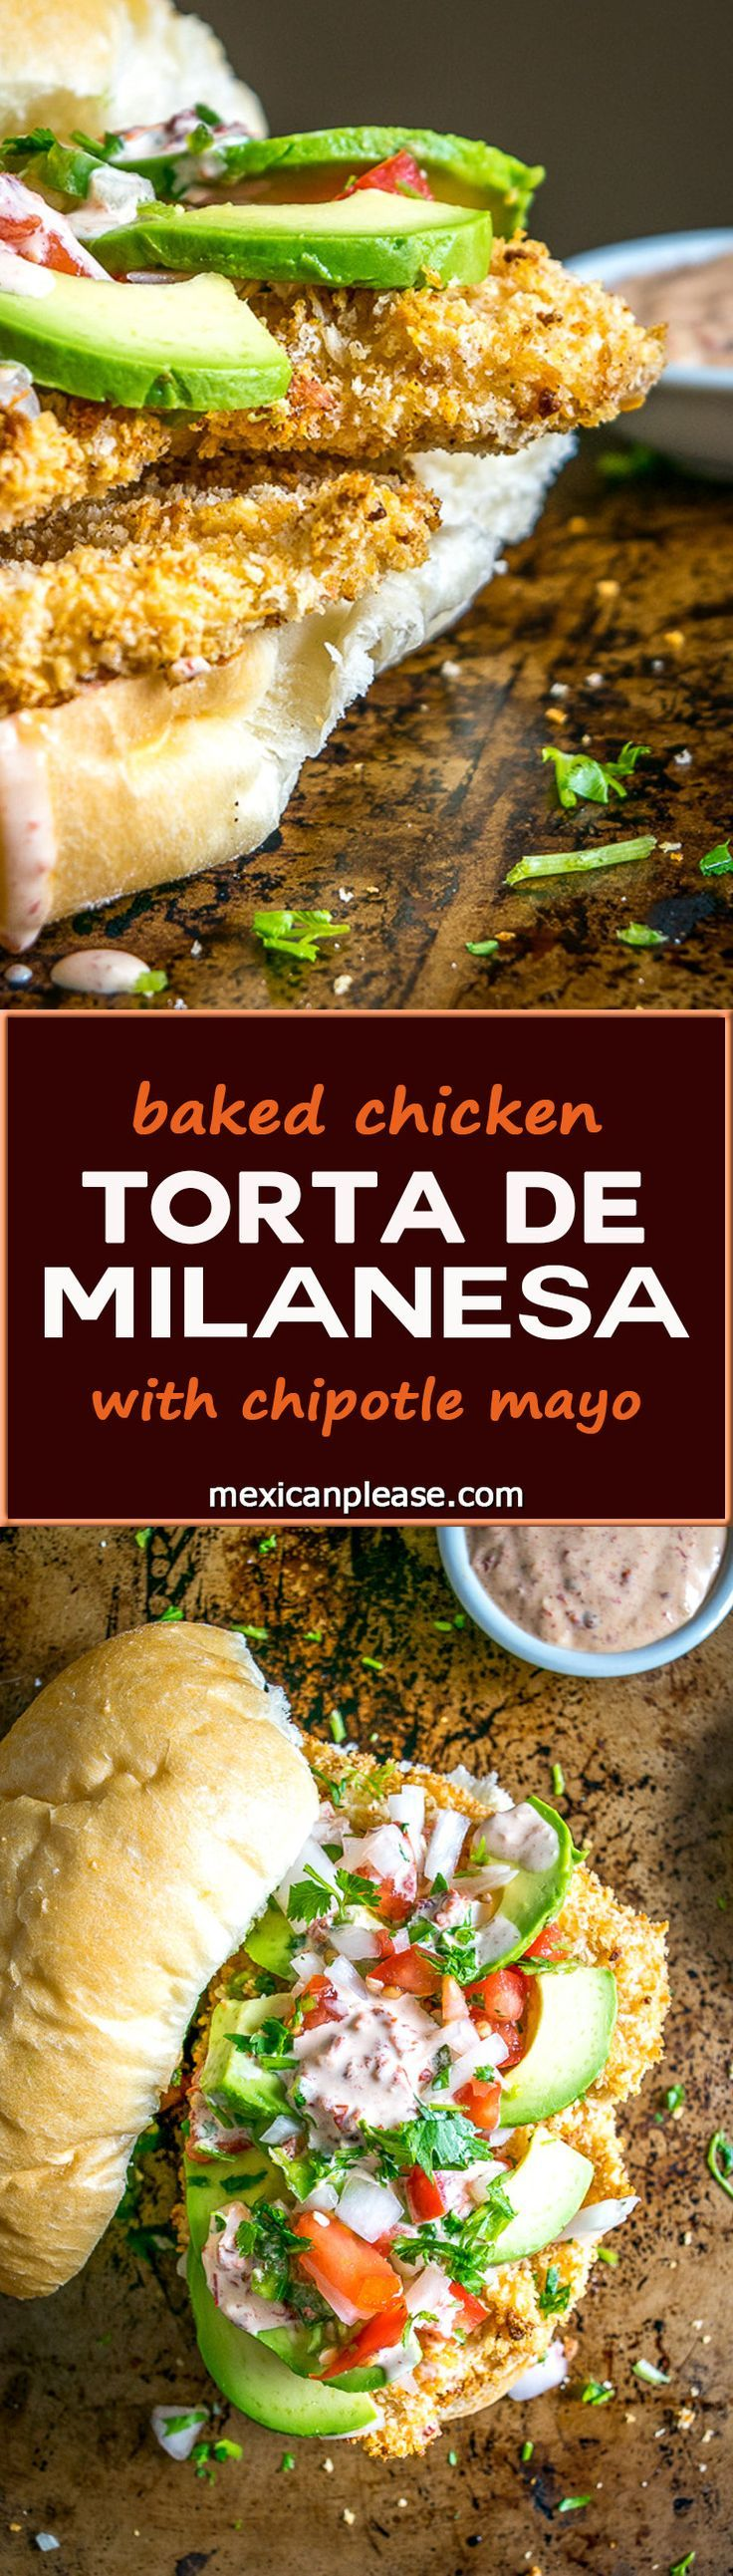 This Baked Milanesa Torta is loaded with avocado, Pico de Gallo and Chipotle Mayo. Yowsa! No frying either, just bread the chicken cutlets and give 'em 12 minutes in the oven. Buen Provecho. http://mexicanplease.com